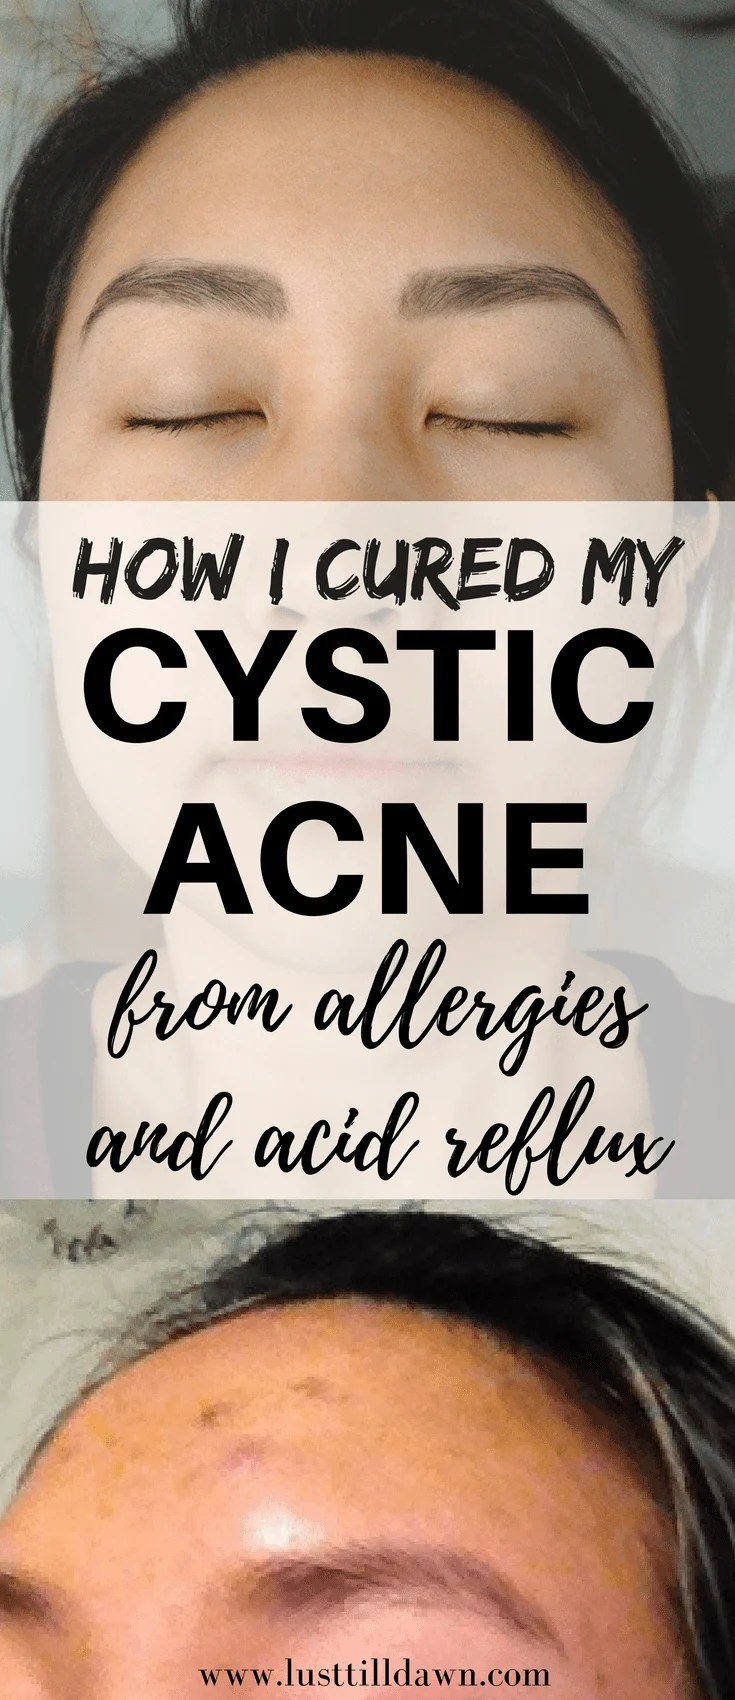 I finally cured 5 years of cystic acne by discovering food allergies and healing my acid reflux. Check out my post on my difficulty on curing my acne, what I tried and didn't work, how I finally healed my acid reflux from food allergies and acid reflux, and my daily skin care routine. Before and after photos included!